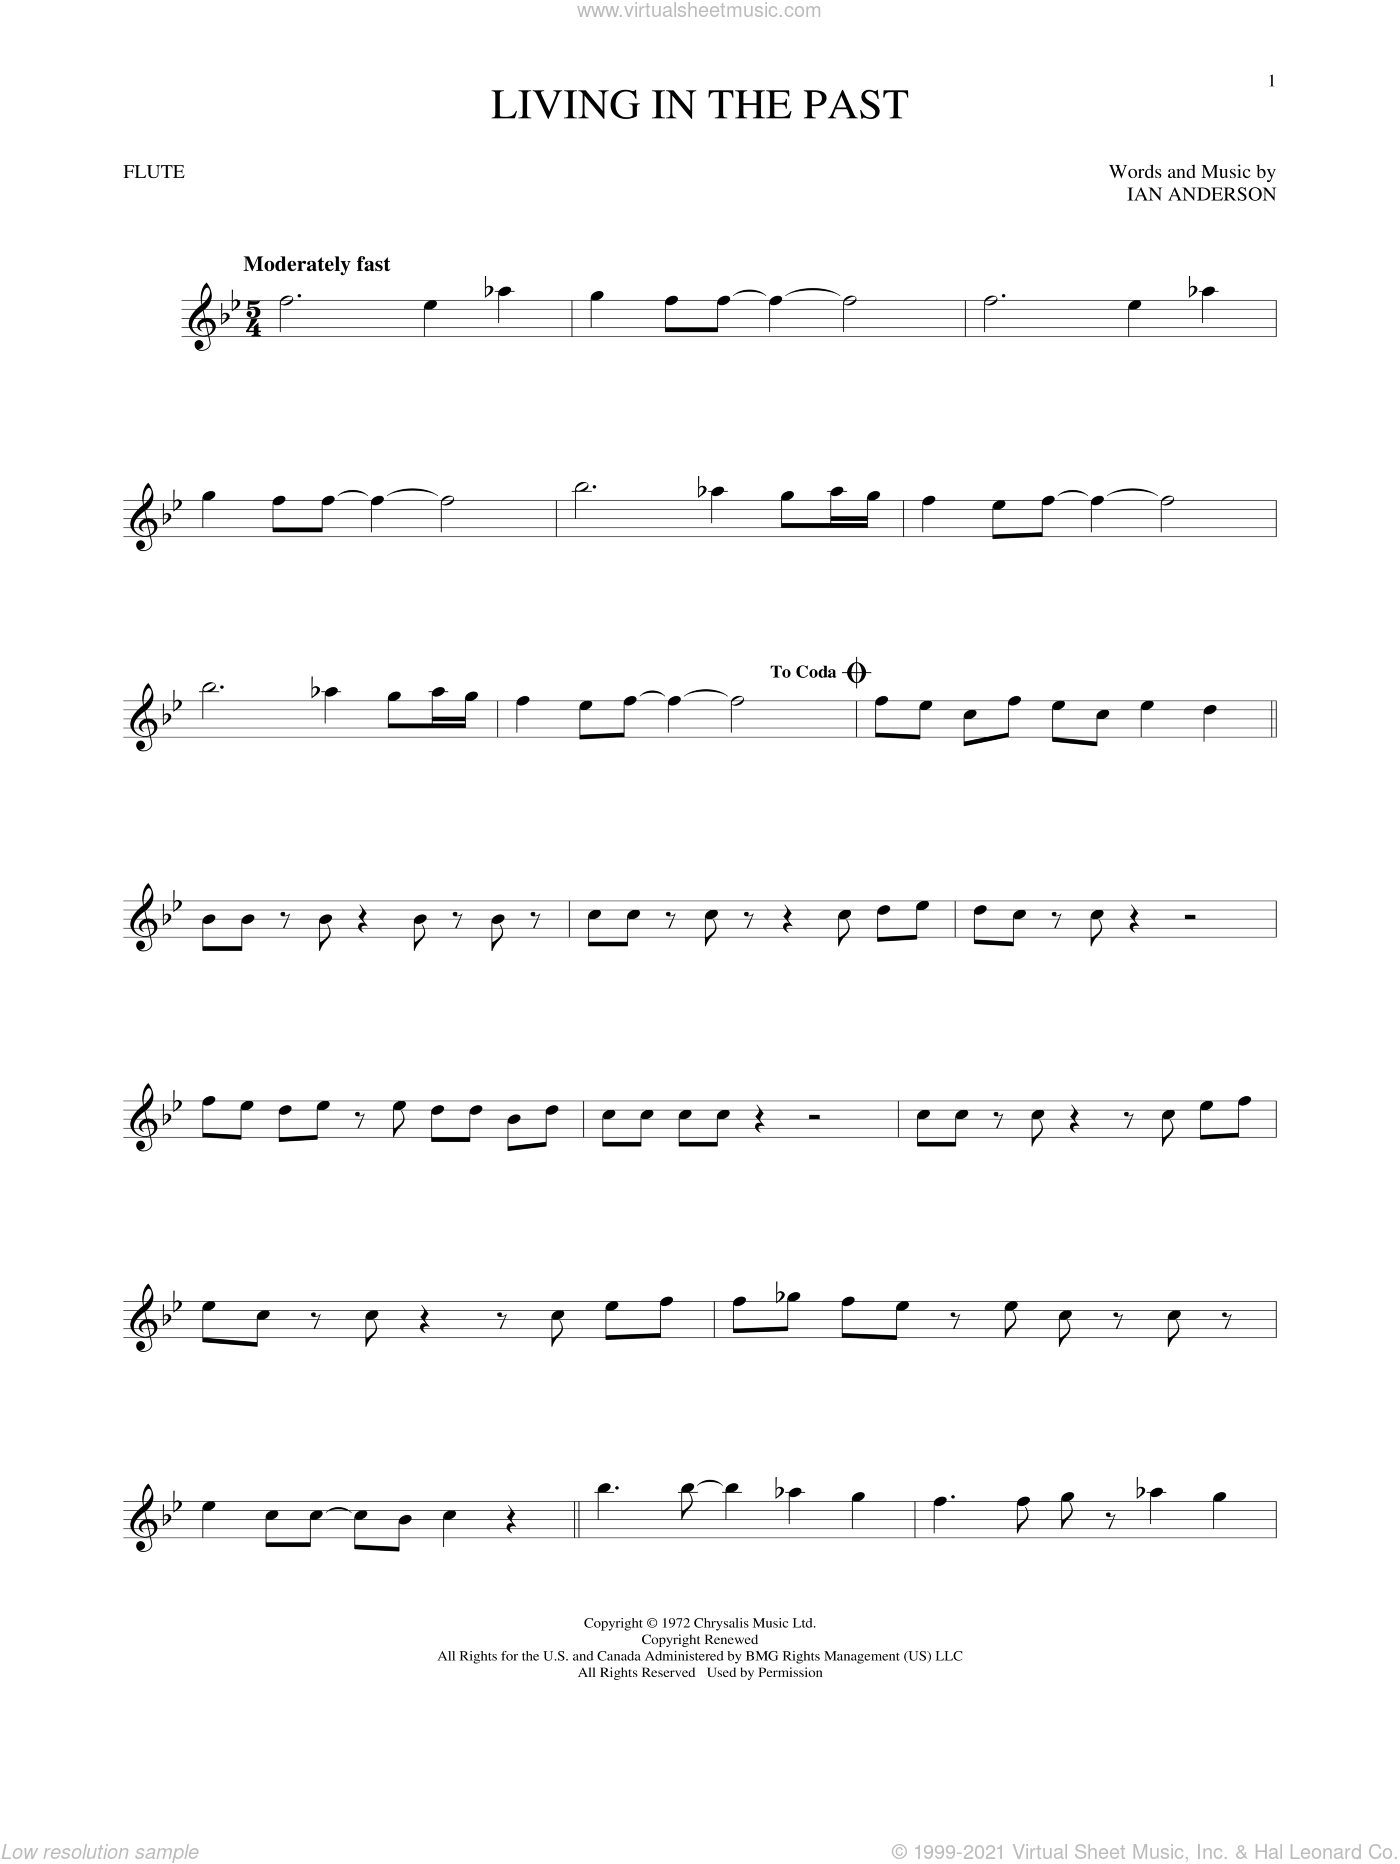 Living In The Past sheet music for flute solo by Jethro Tull and Ian Anderson, intermediate skill level